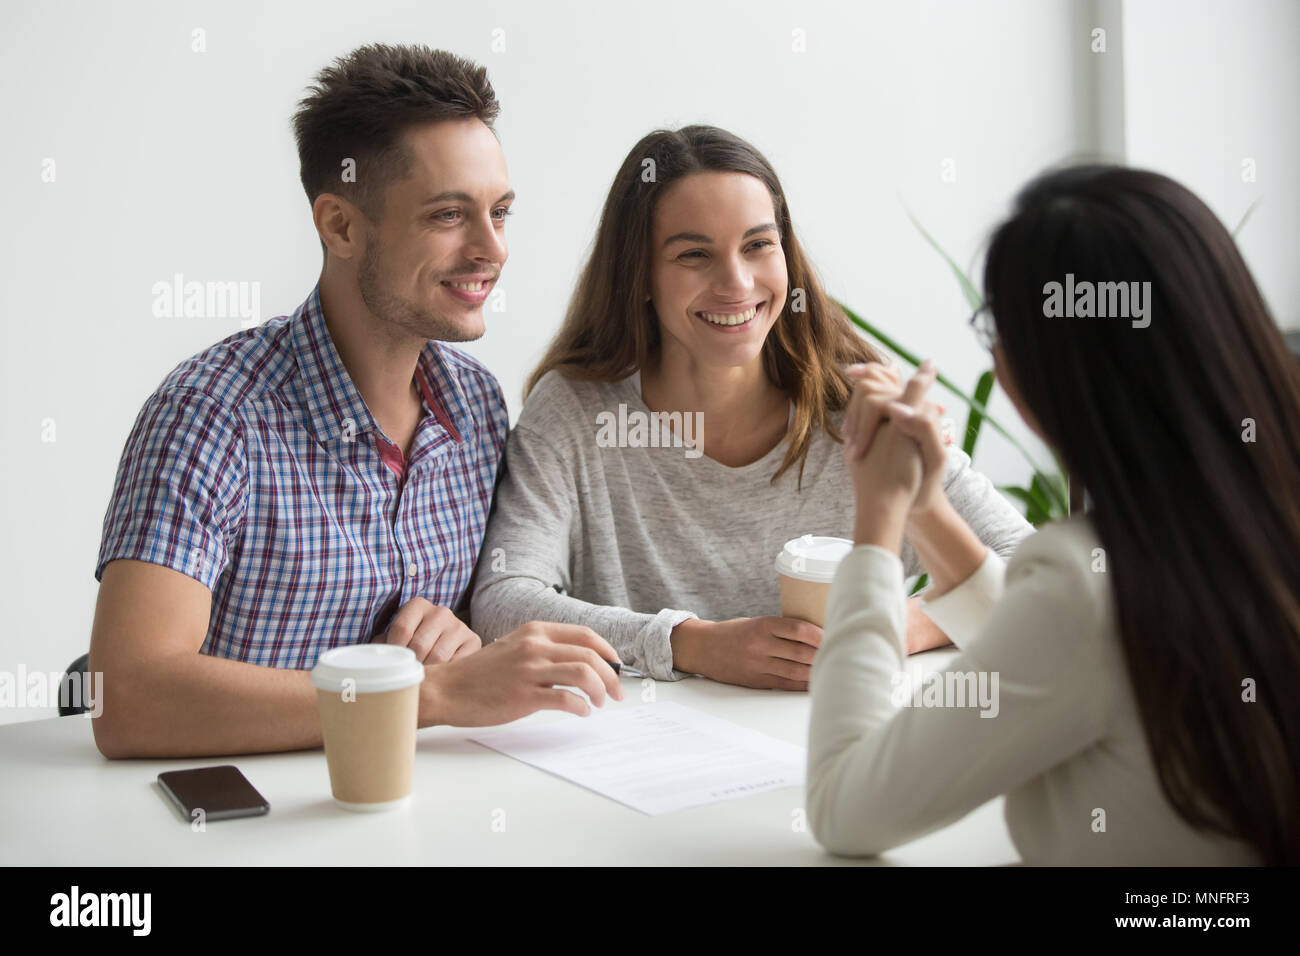 Smiling couple talking to real estate agent - Stock Image